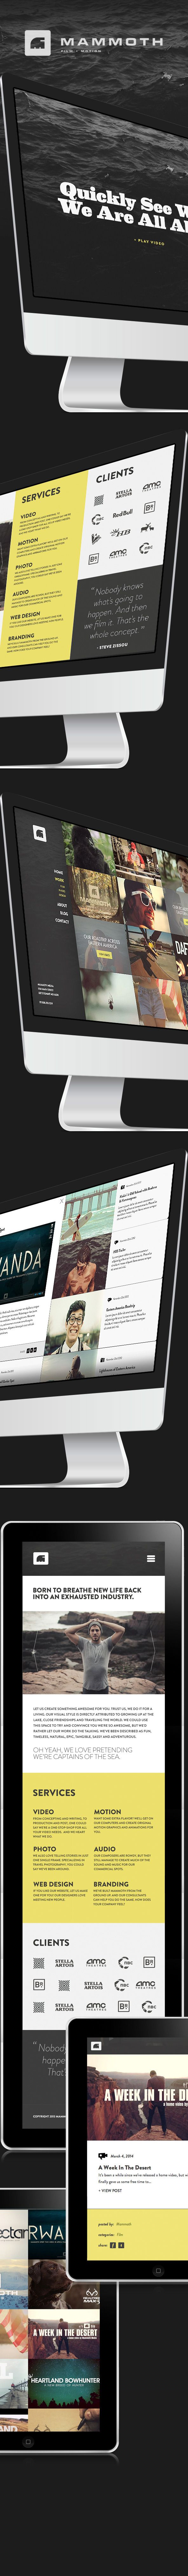 Mammoth Media Redesign by Christopher Wilson, via Behance